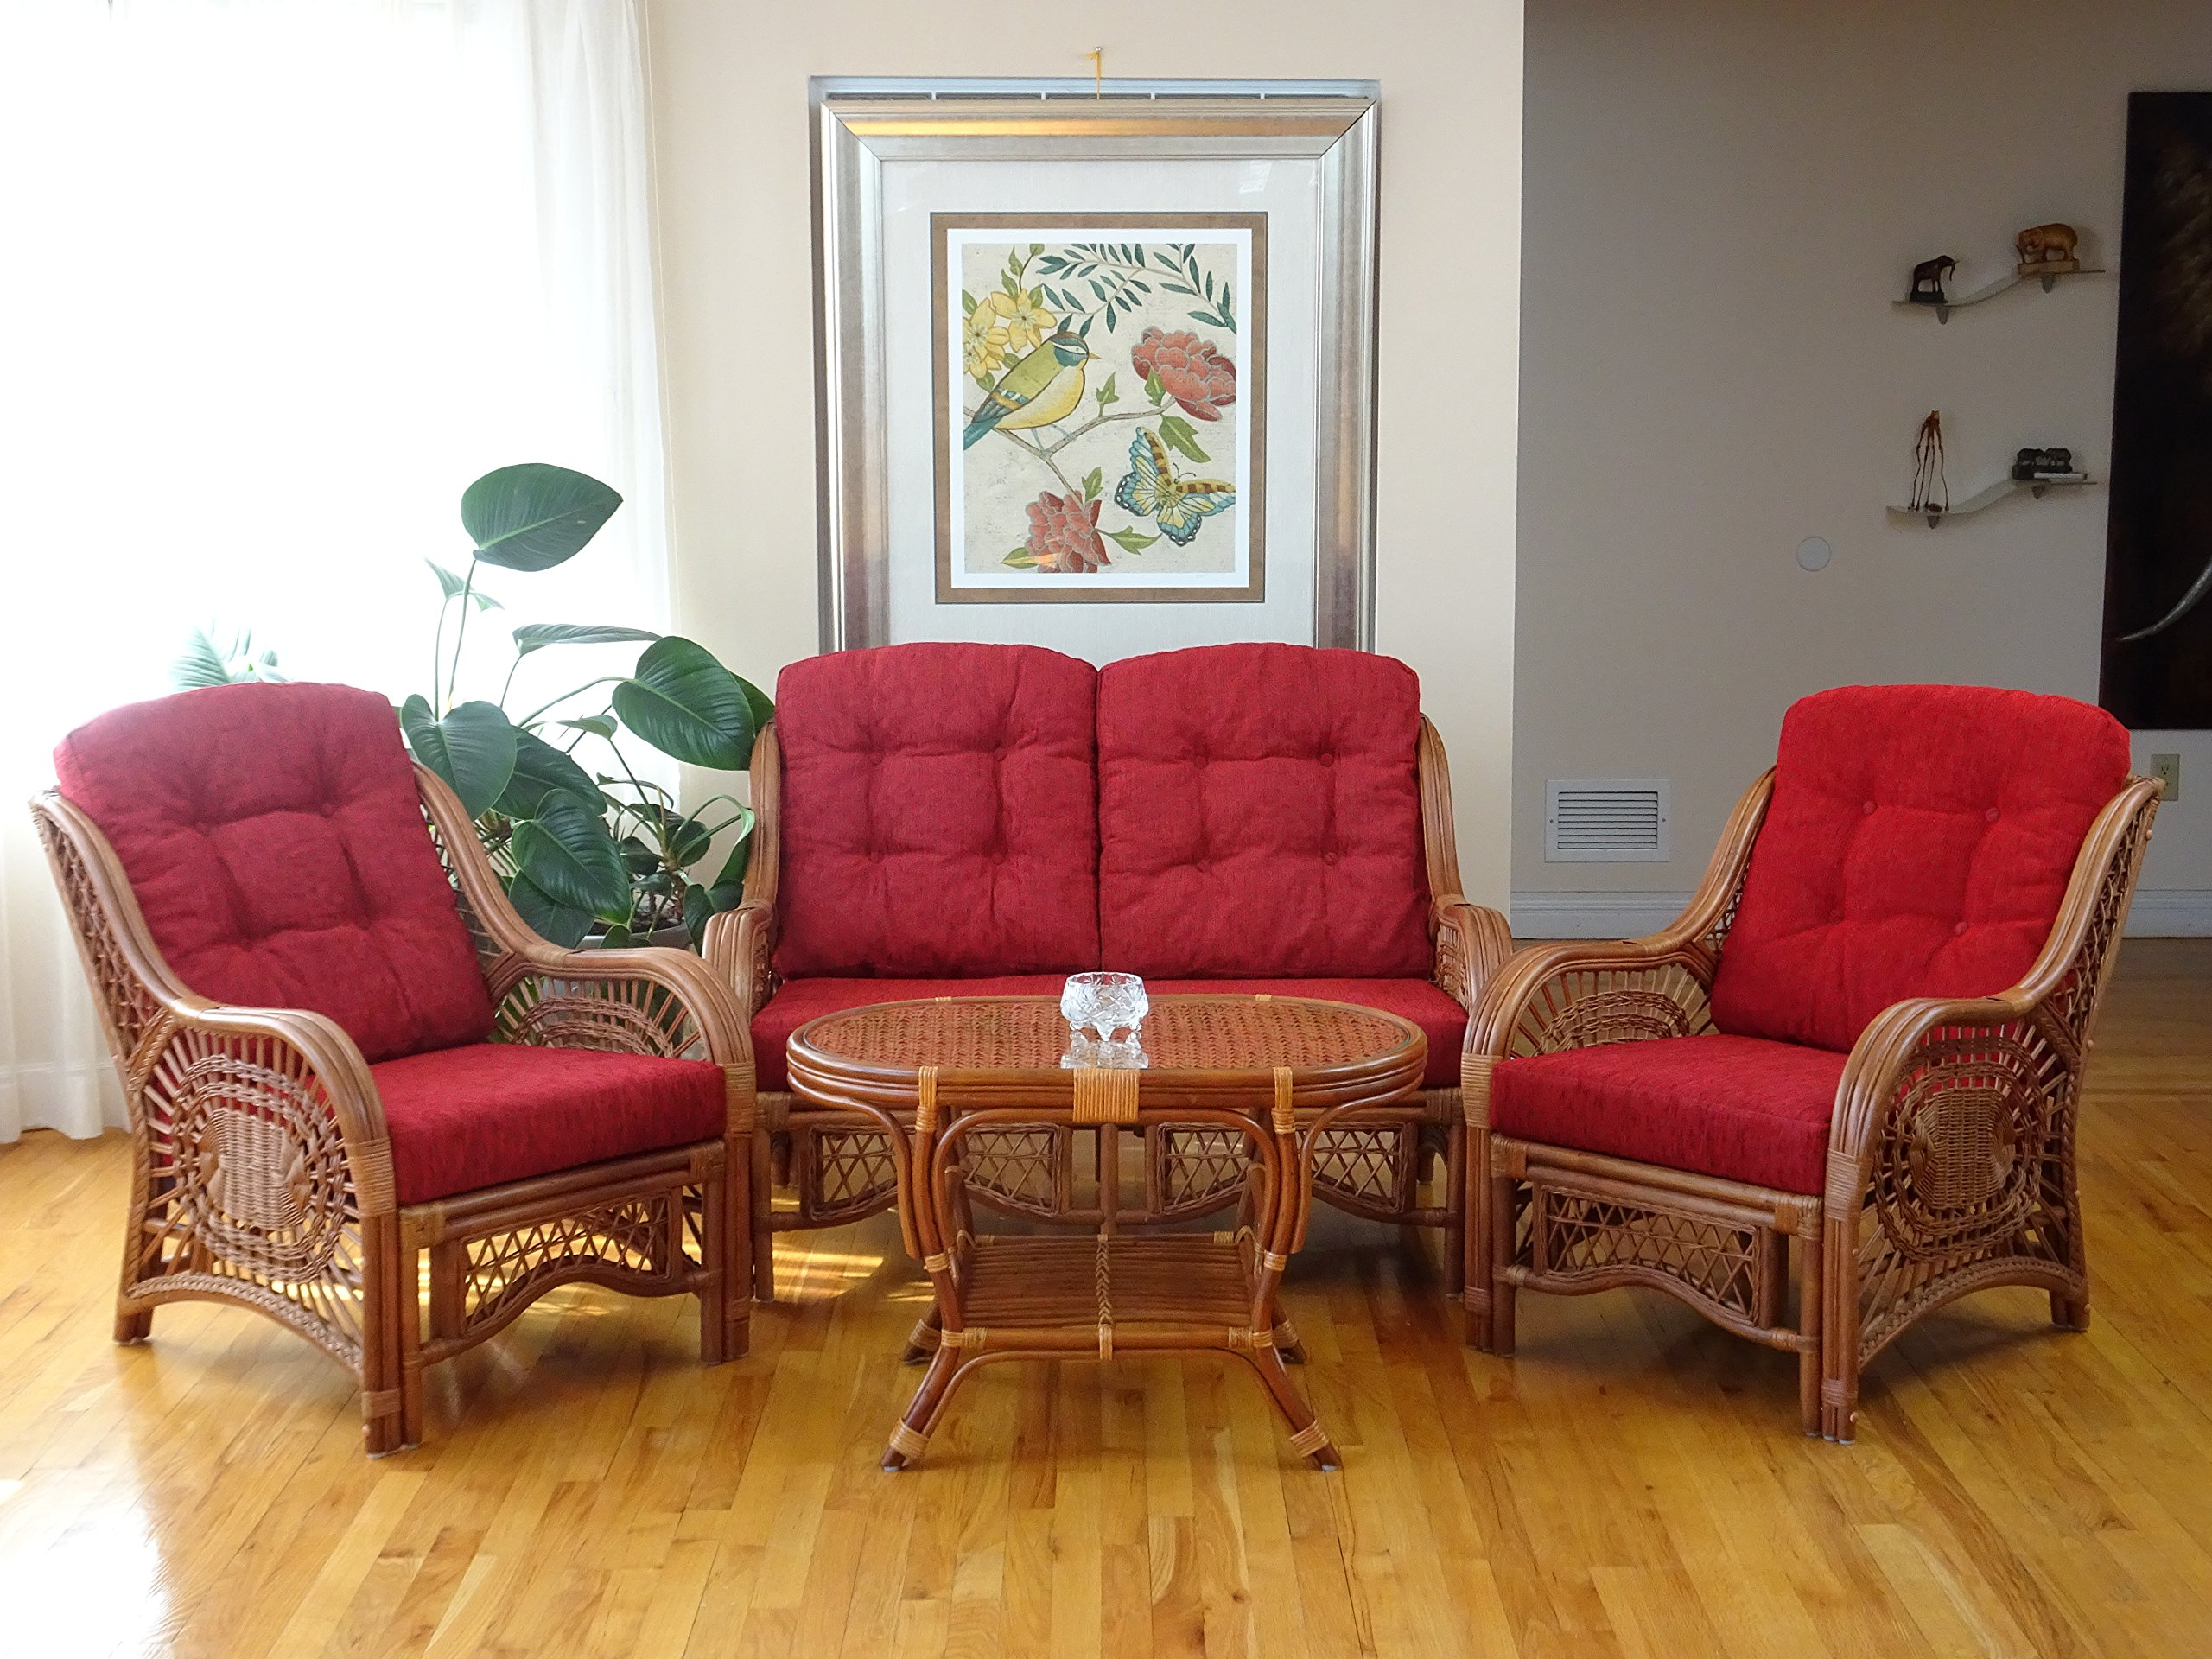 Malibu Lounge Loveseat Sofa Natural Rattan Wicker Handmade Design with Red Cushions, Colonial - ~Natural Rattan (Wicker) ~Color: Colonial ~Very easy to assemble - sofas-couches, living-room-furniture, living-room - 91fibR8e58L -